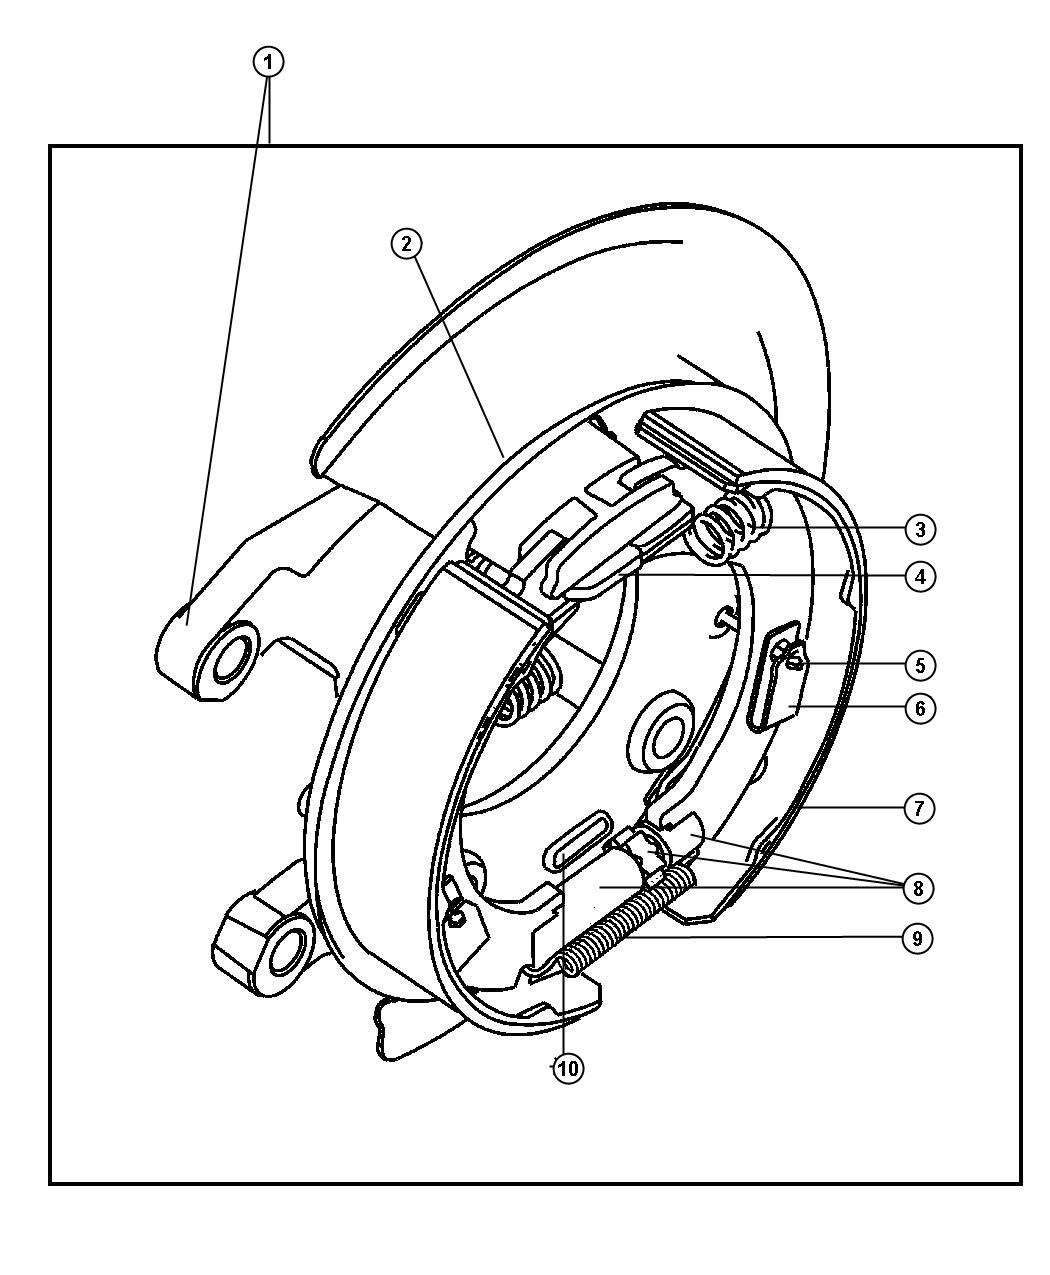 Dodge Ram Rear Disc Parking Brake Assy